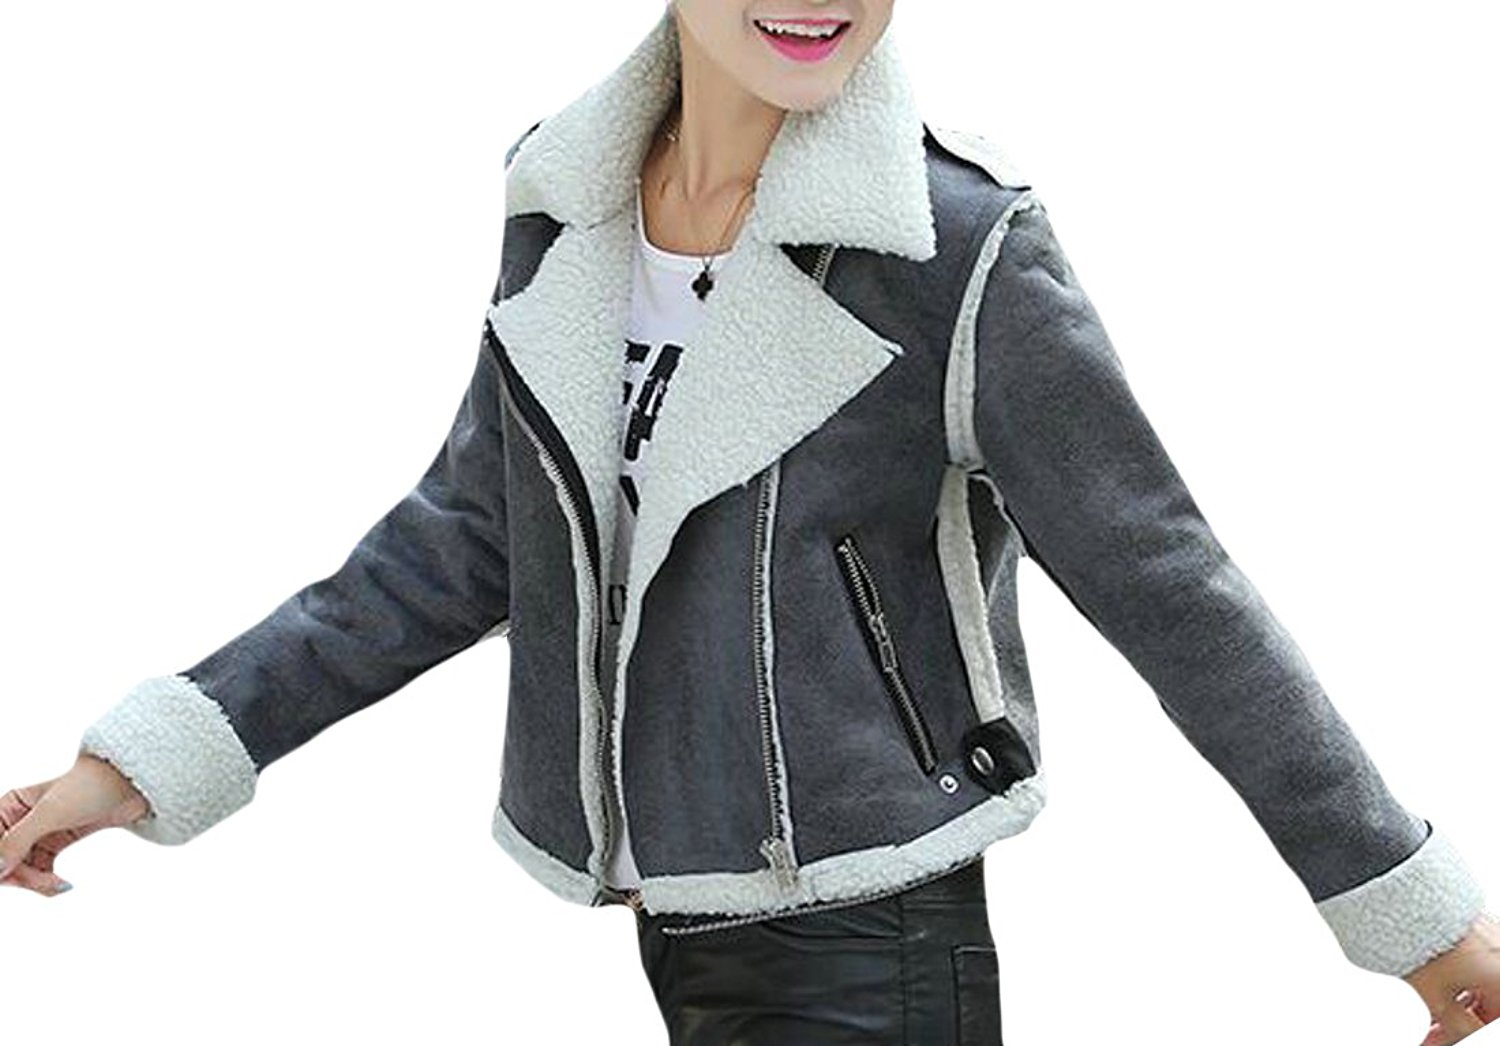 YUNY Women's Warm Faux Suede Leather Motorcycle Jacket Coat With Zipper